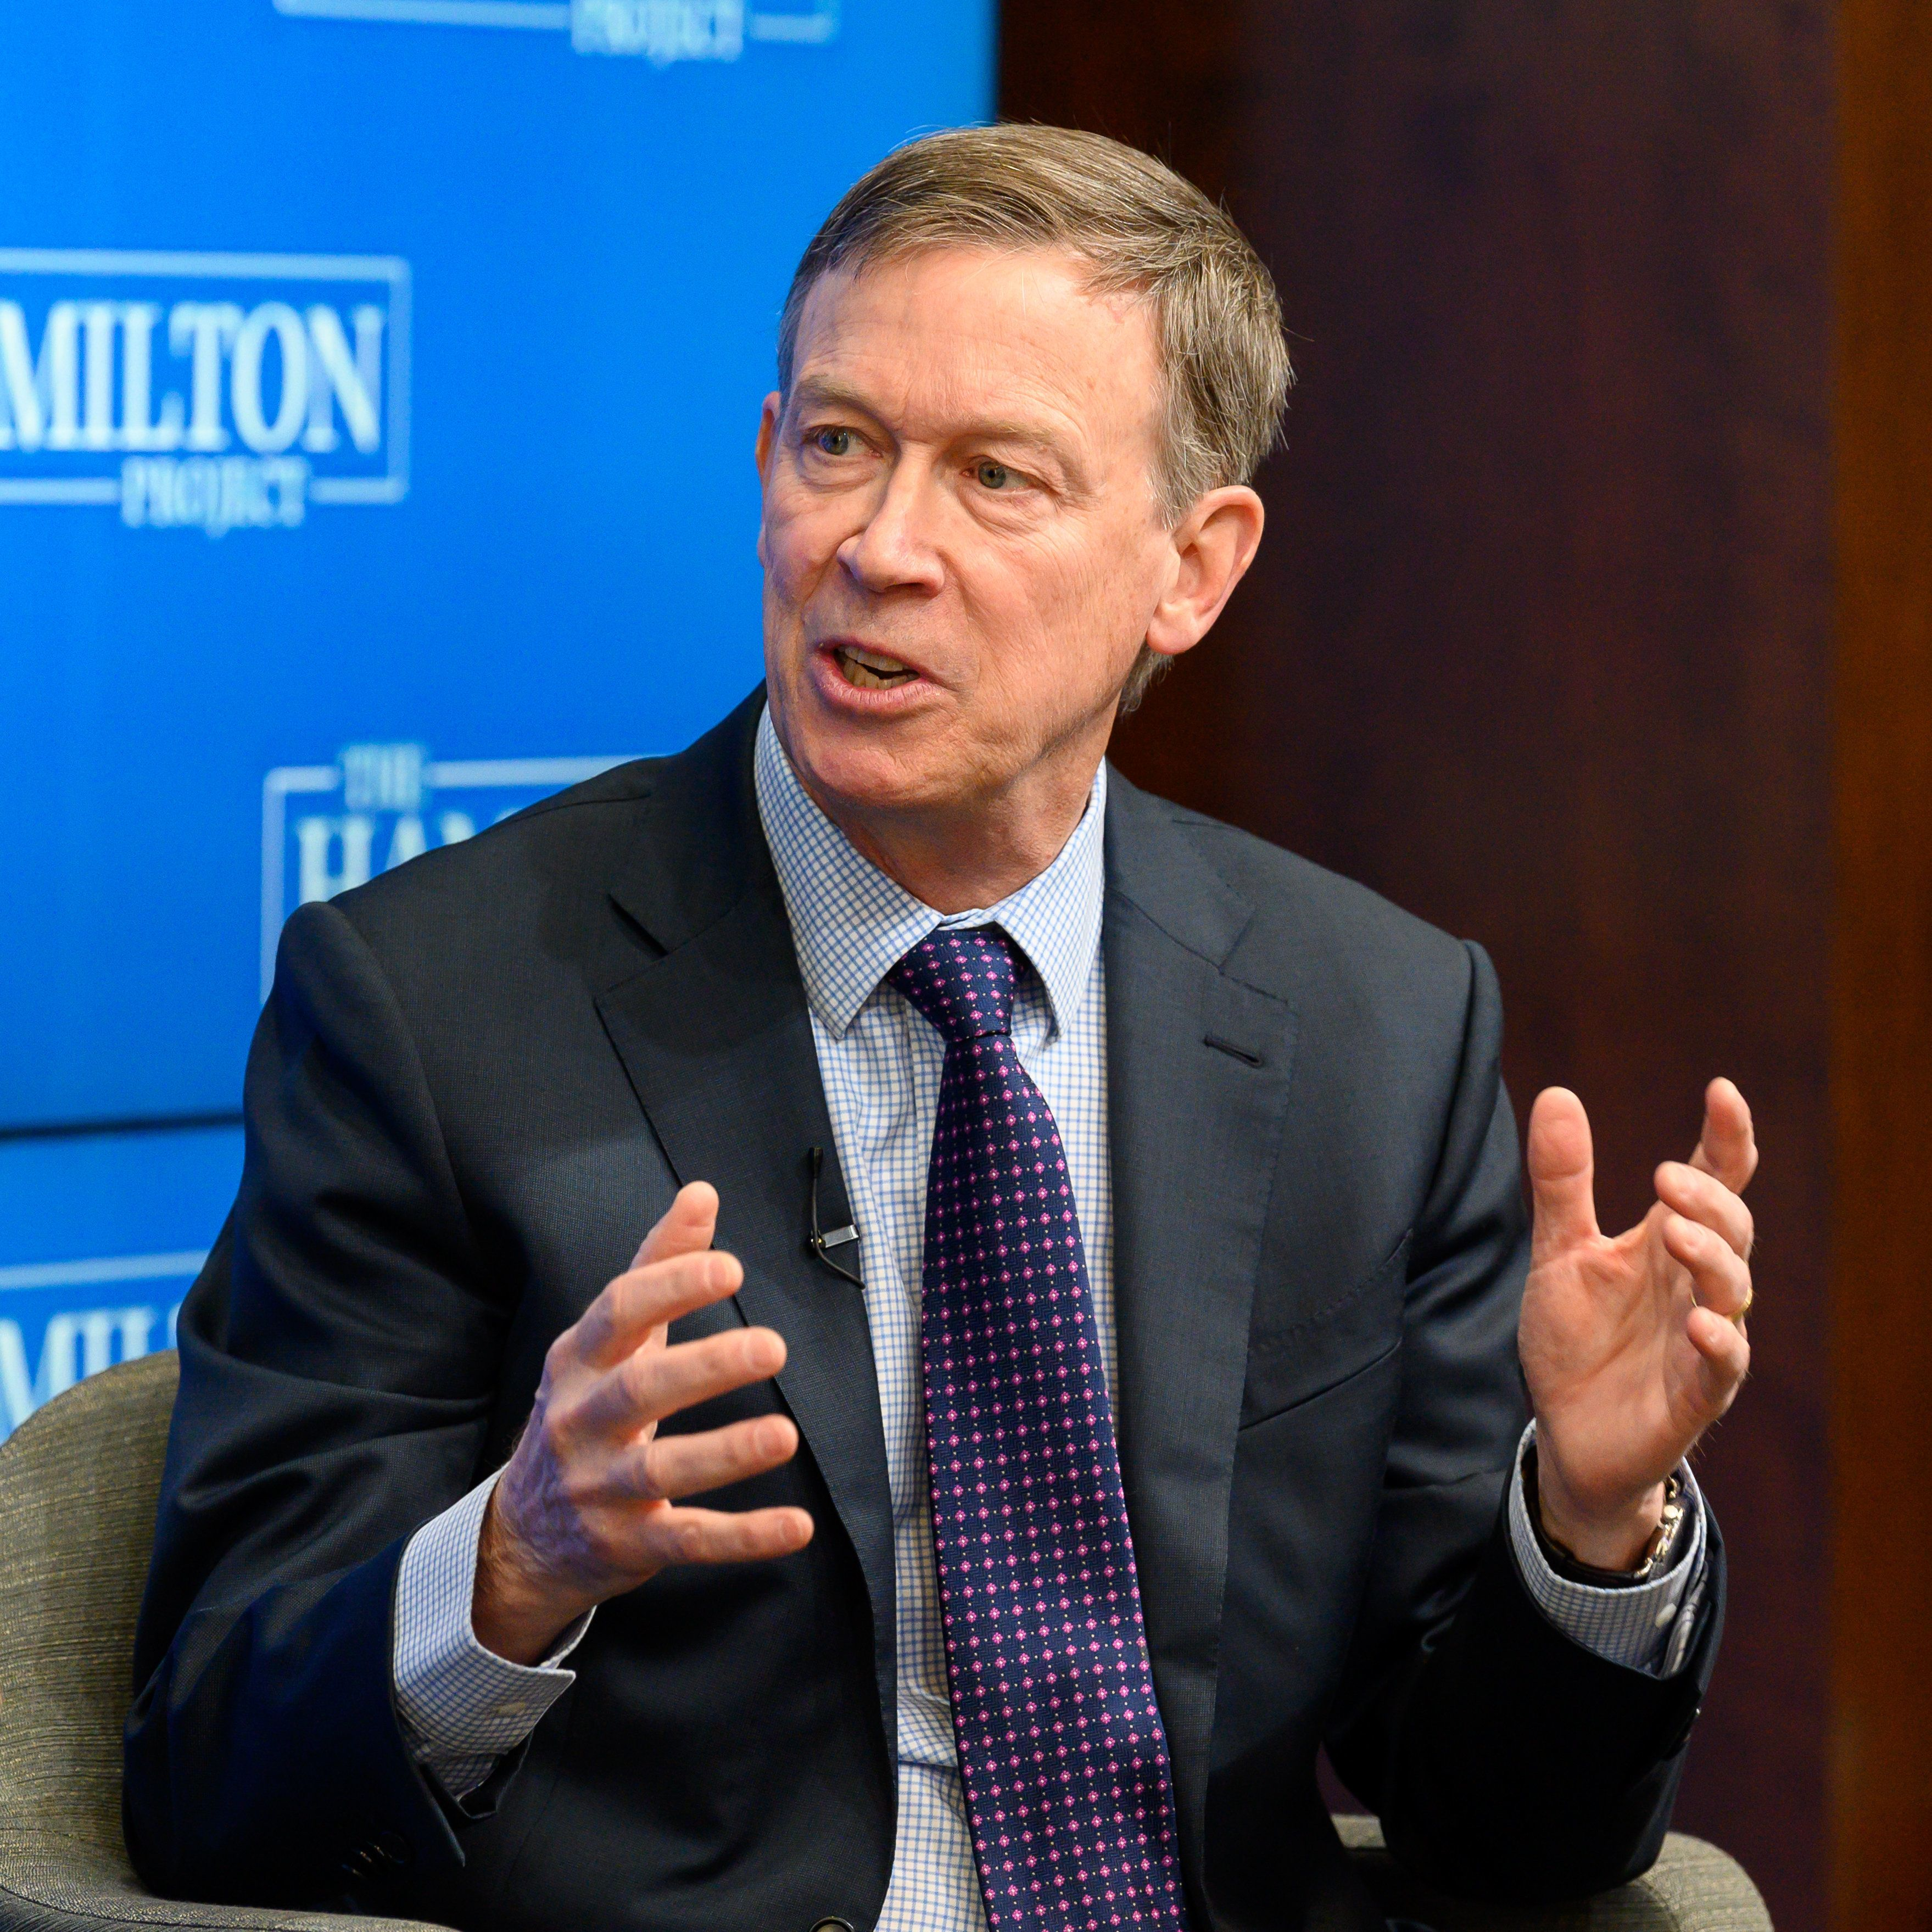 John Hickenlooper Running for President